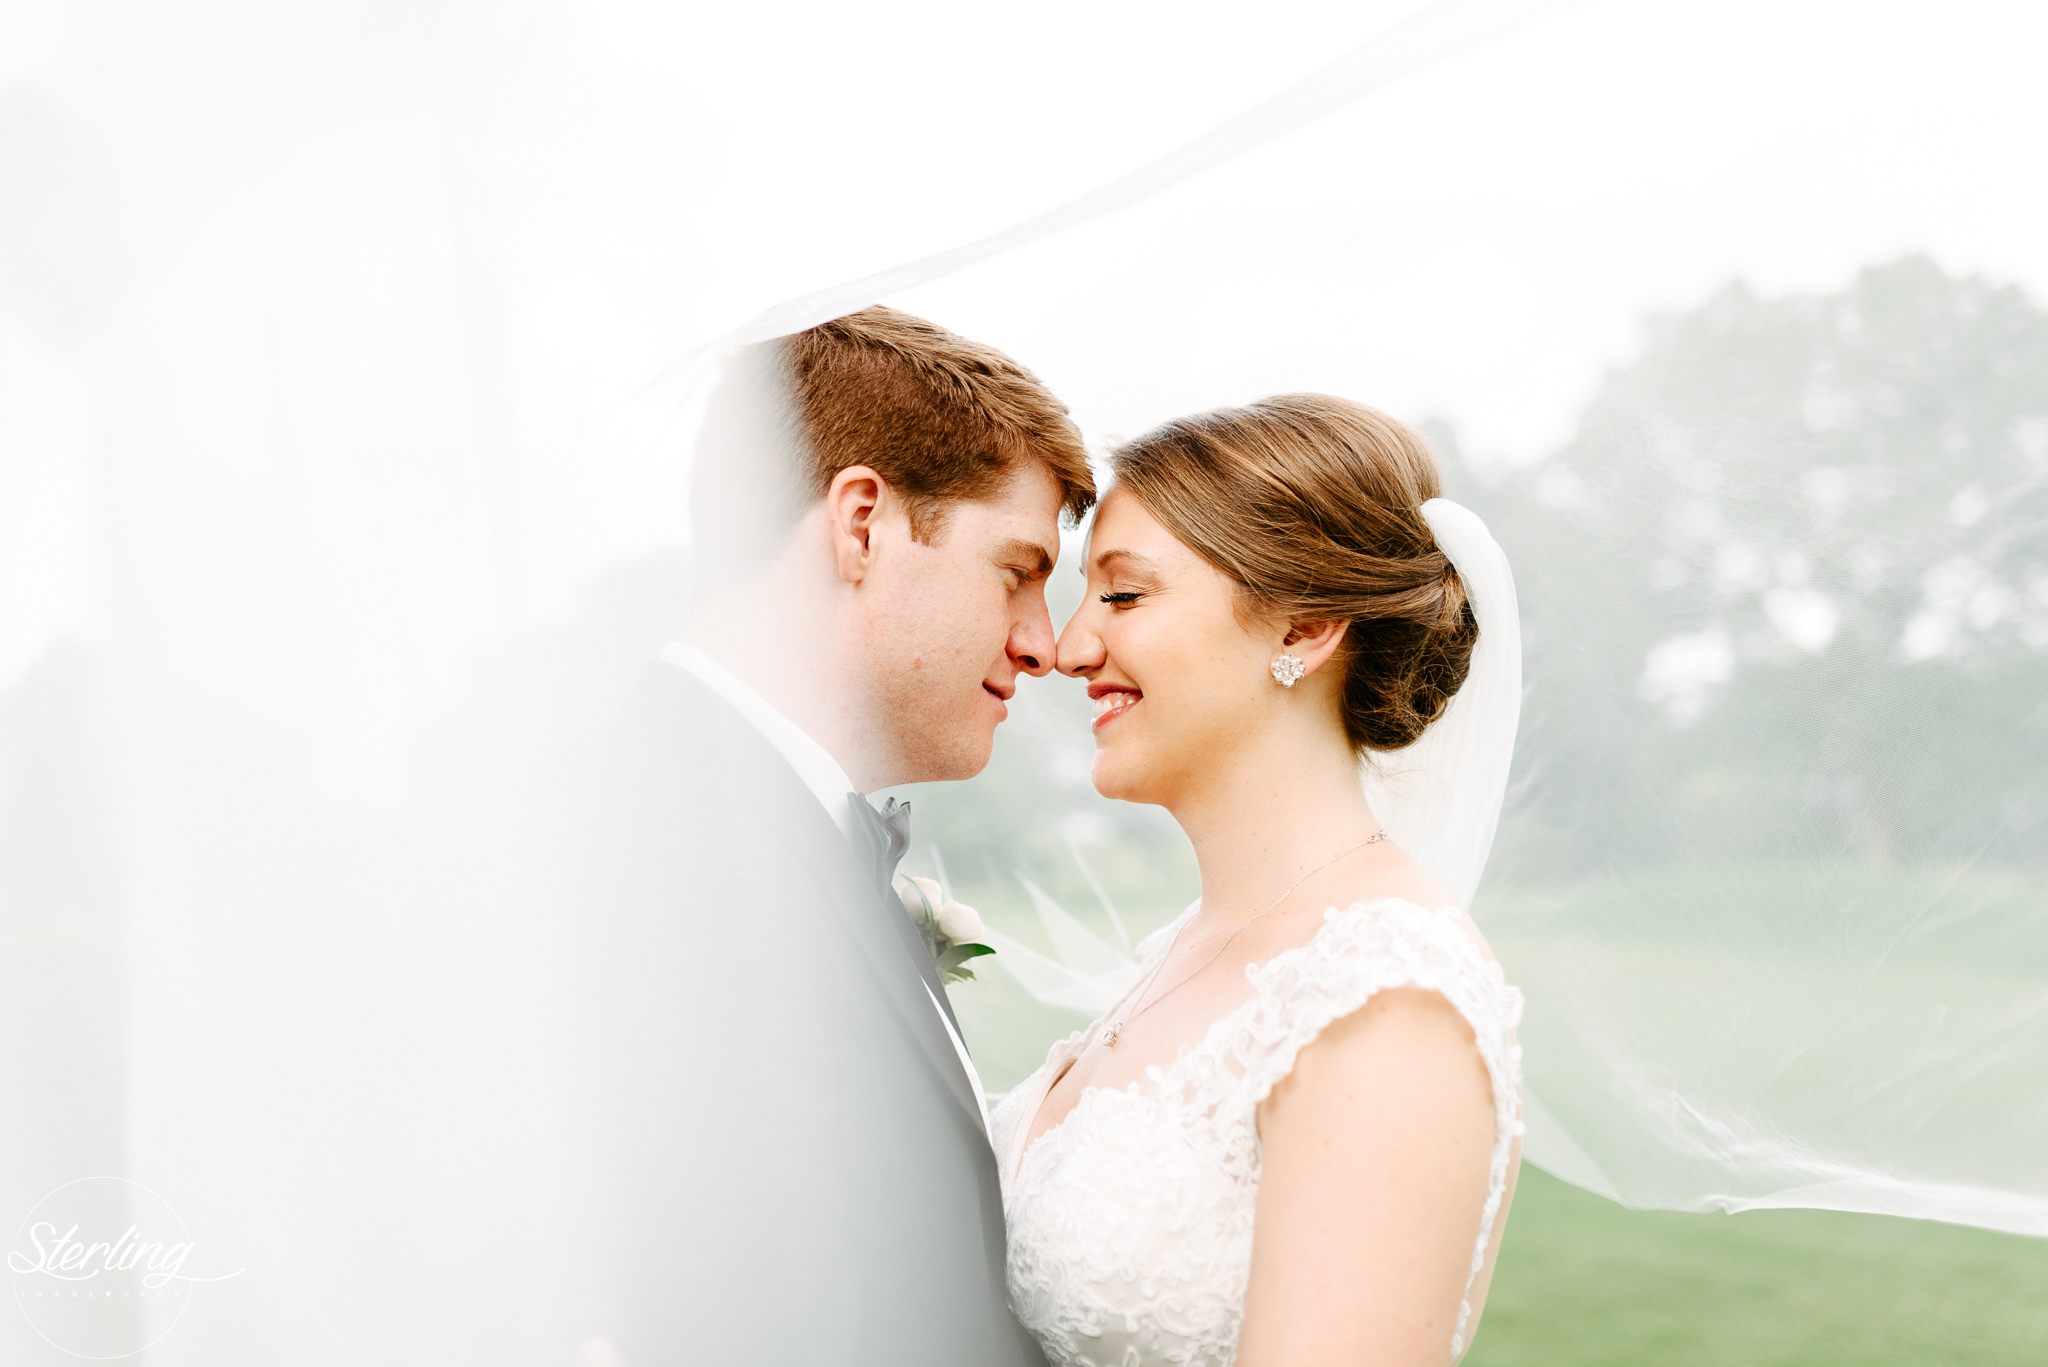 lizzy_Matt_wedding(i)-505.jpg